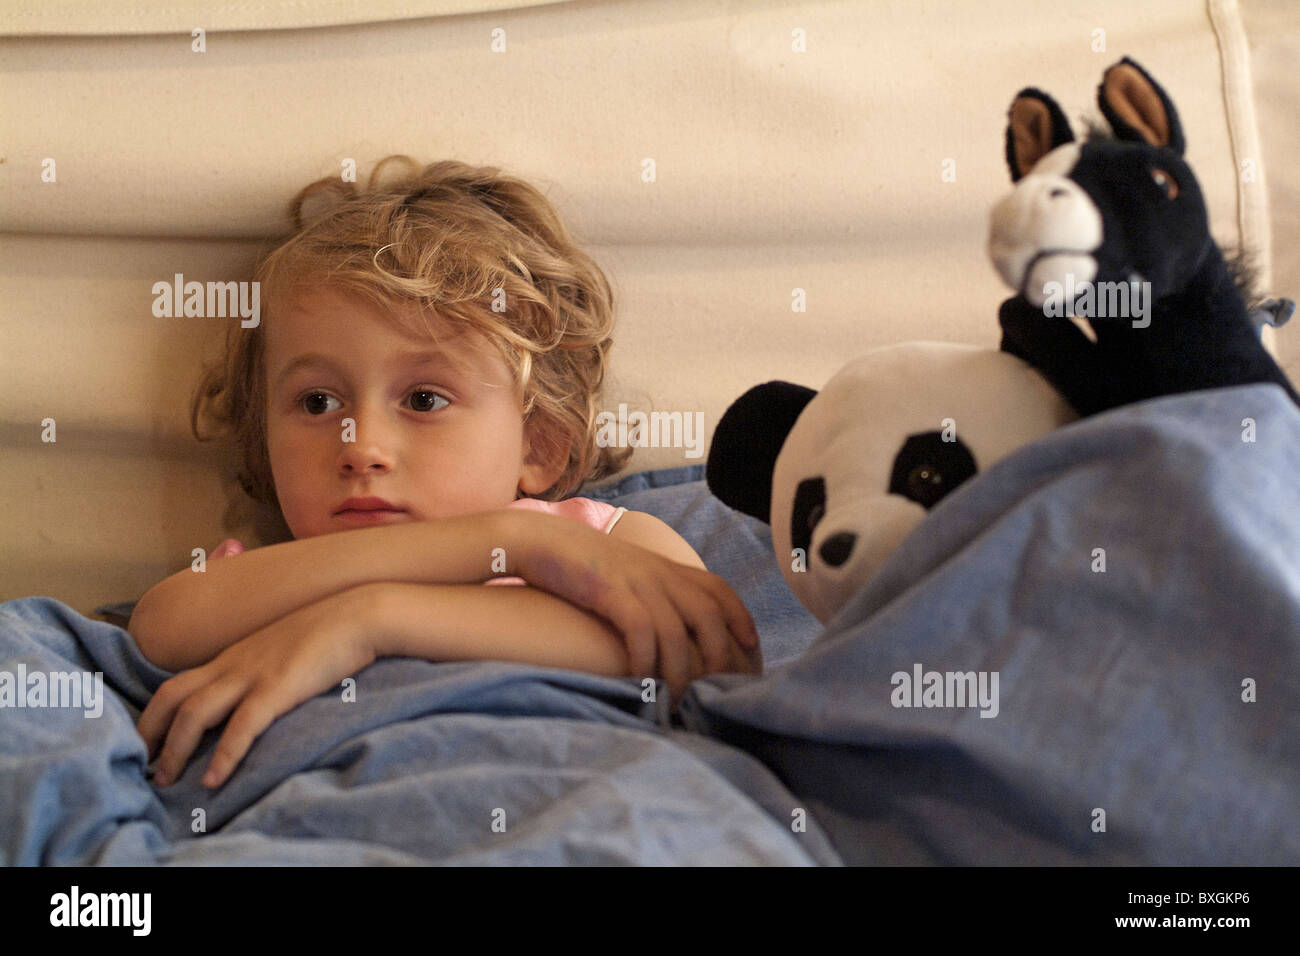 Little girl in bed watching TV surrounded by her favourite toys. - Stock Image